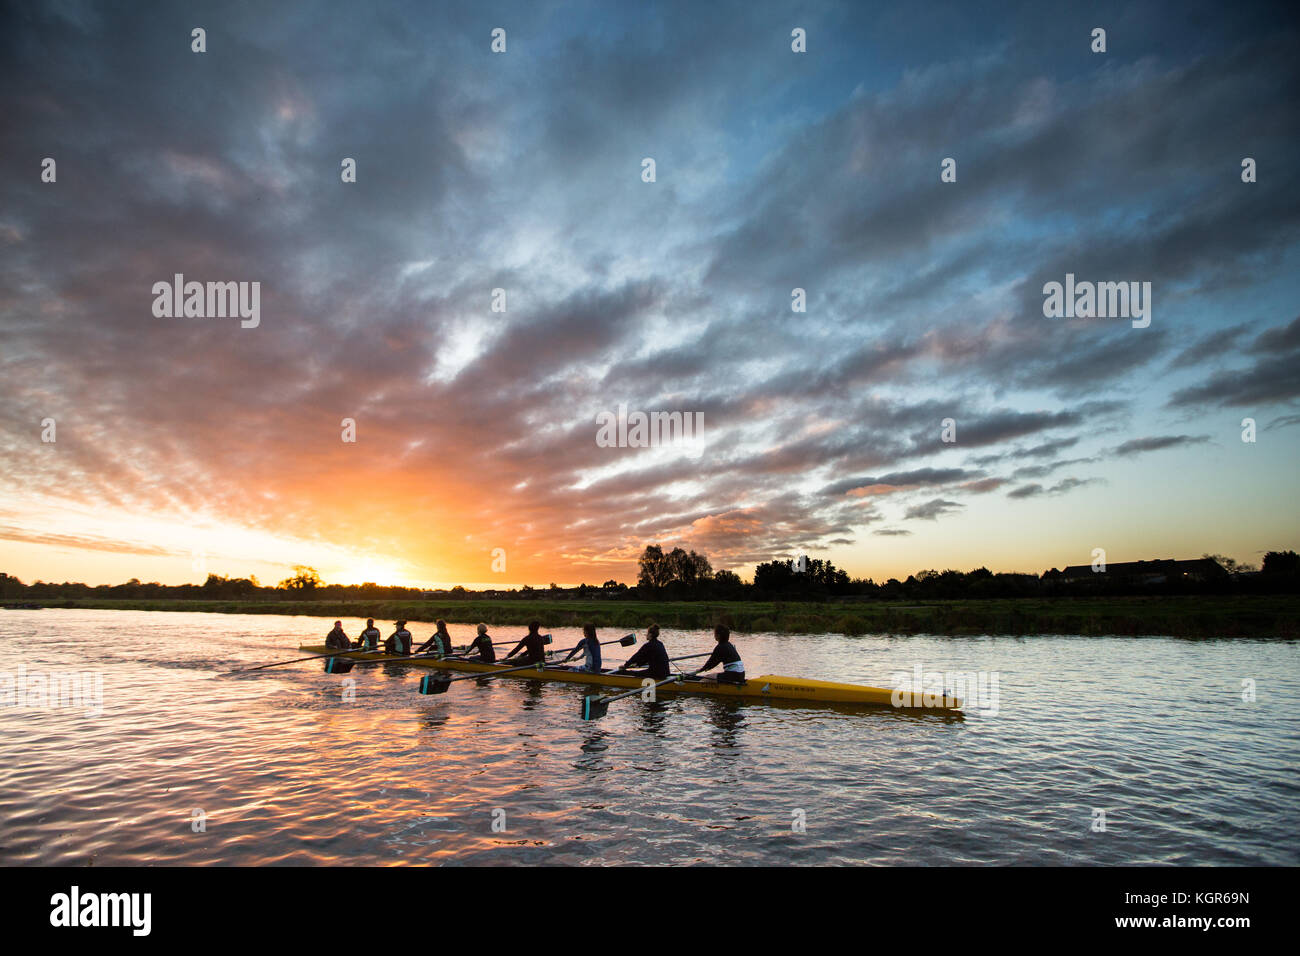 Cambridge University students rowing on the River Cam in Cambridge at sunrise on a sunny but cold start to the day - Stock Image